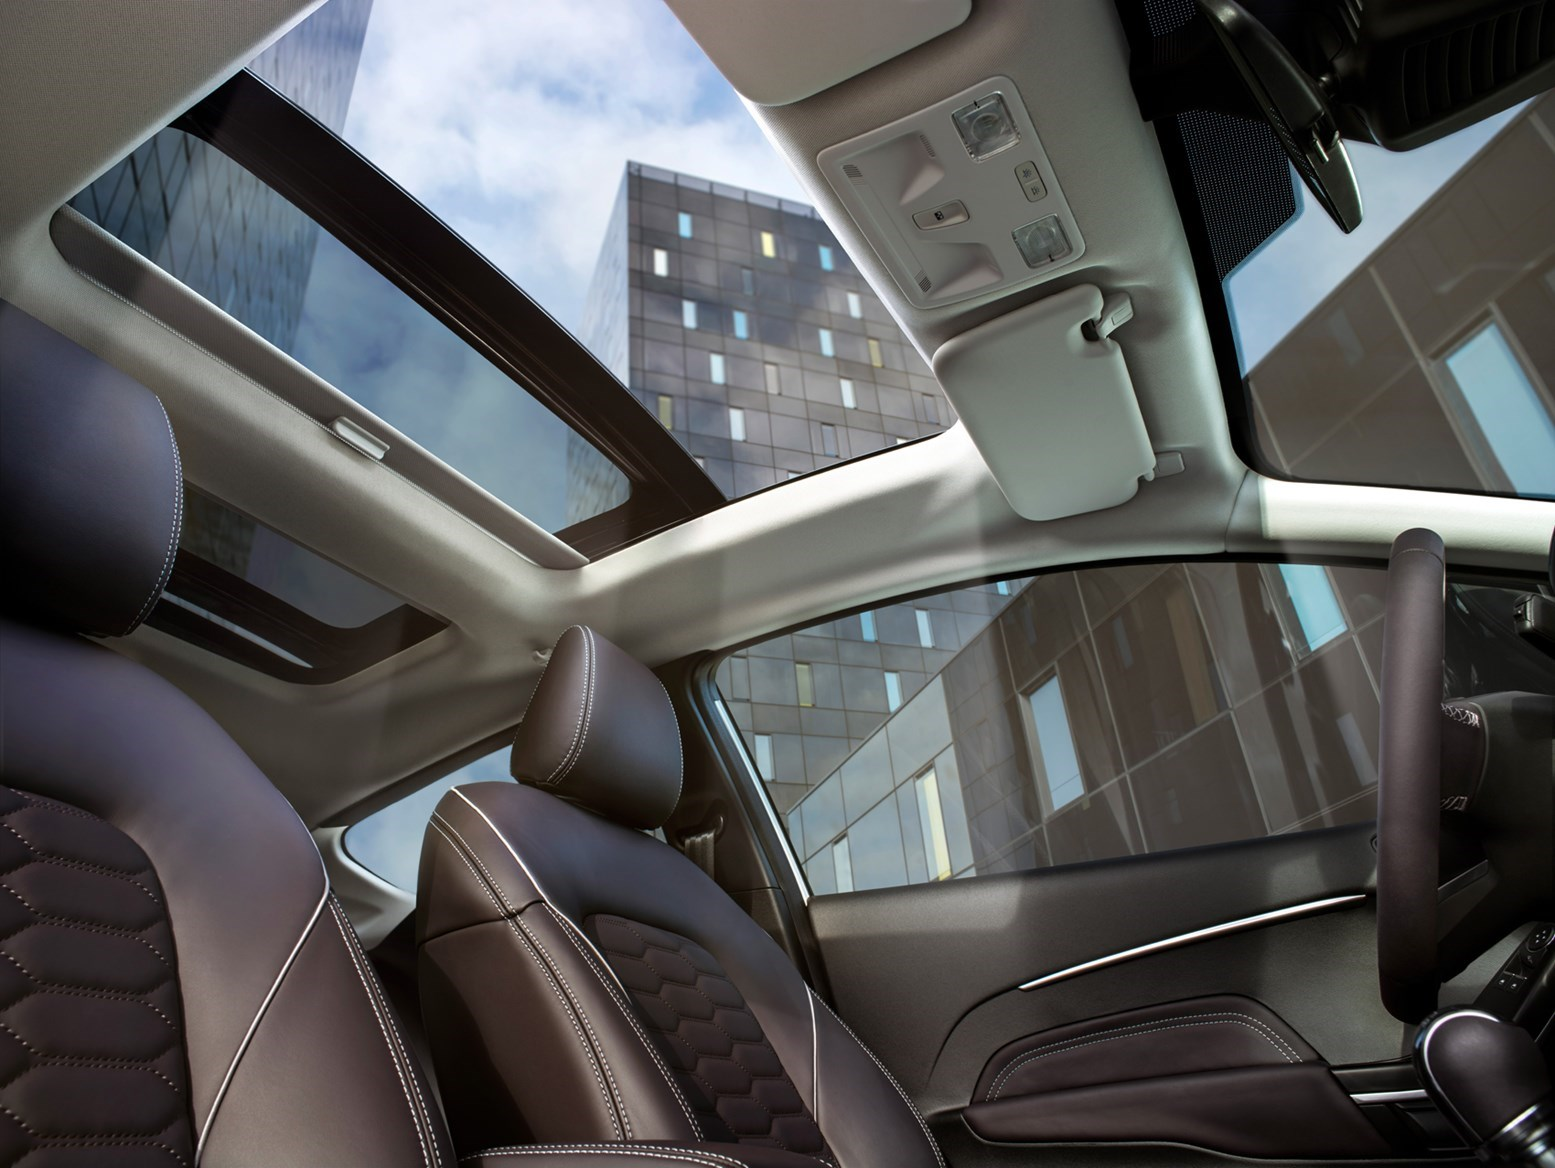 The Ford Fiesta panoramic glass sunroof: steals headroom, especially in the back